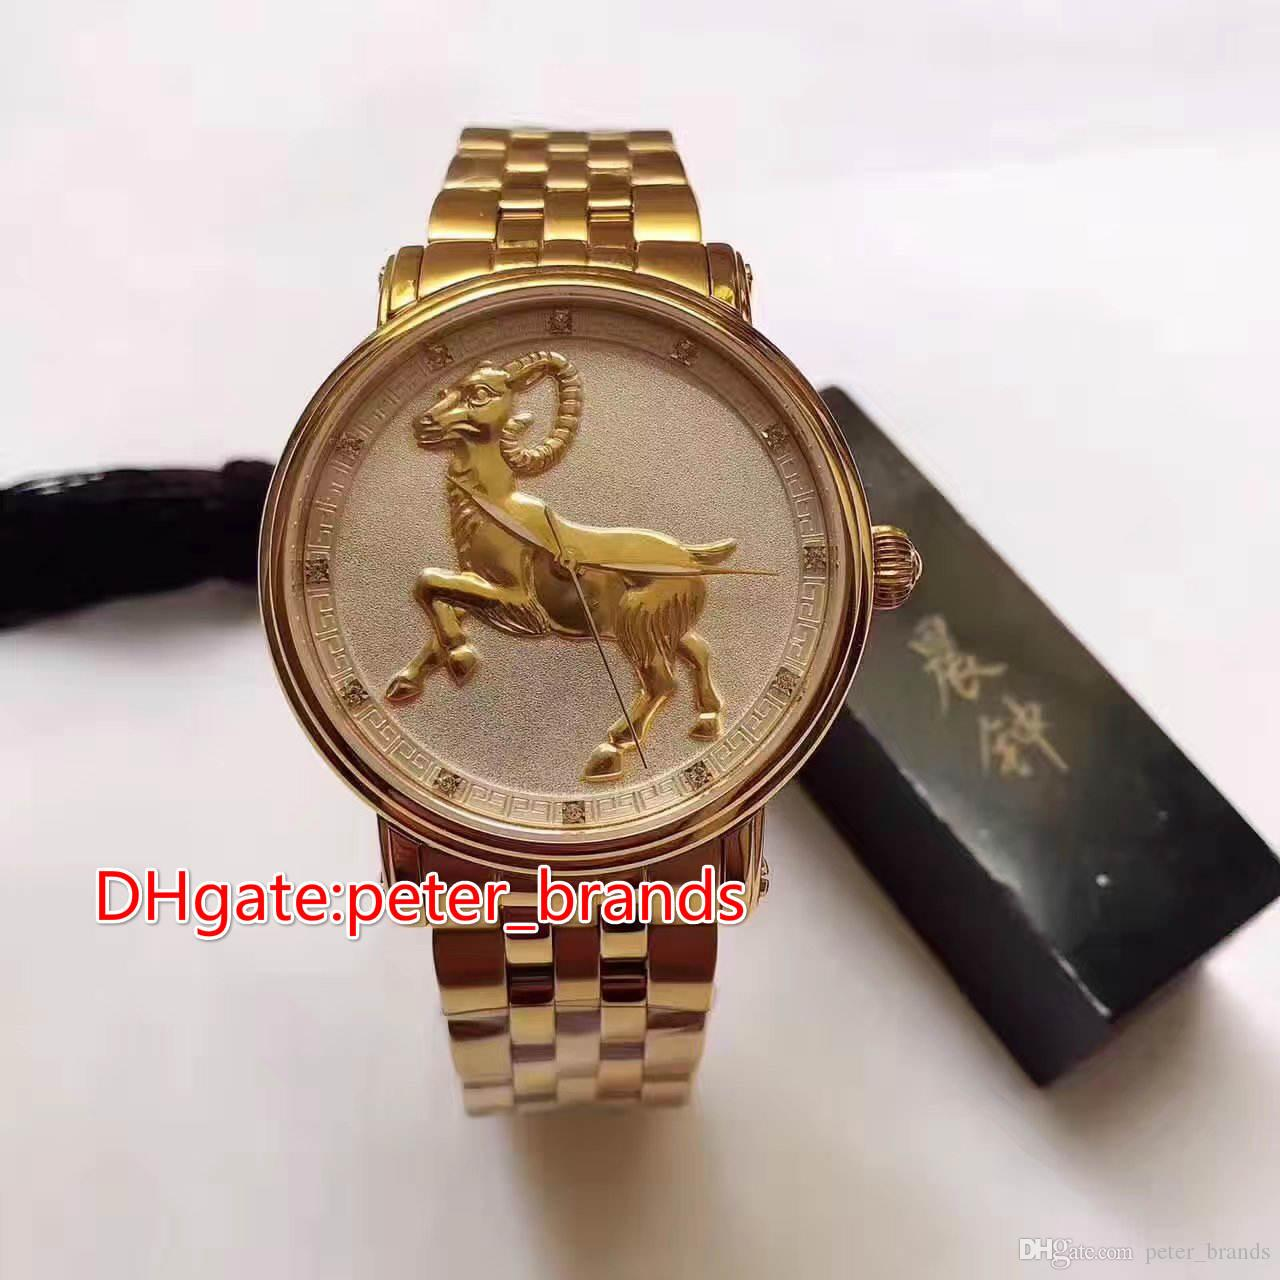 12 zodiac animals with Chinese characteristics horse face full sheep gold case automatic men watch 41mm glass back cover fashion style watch